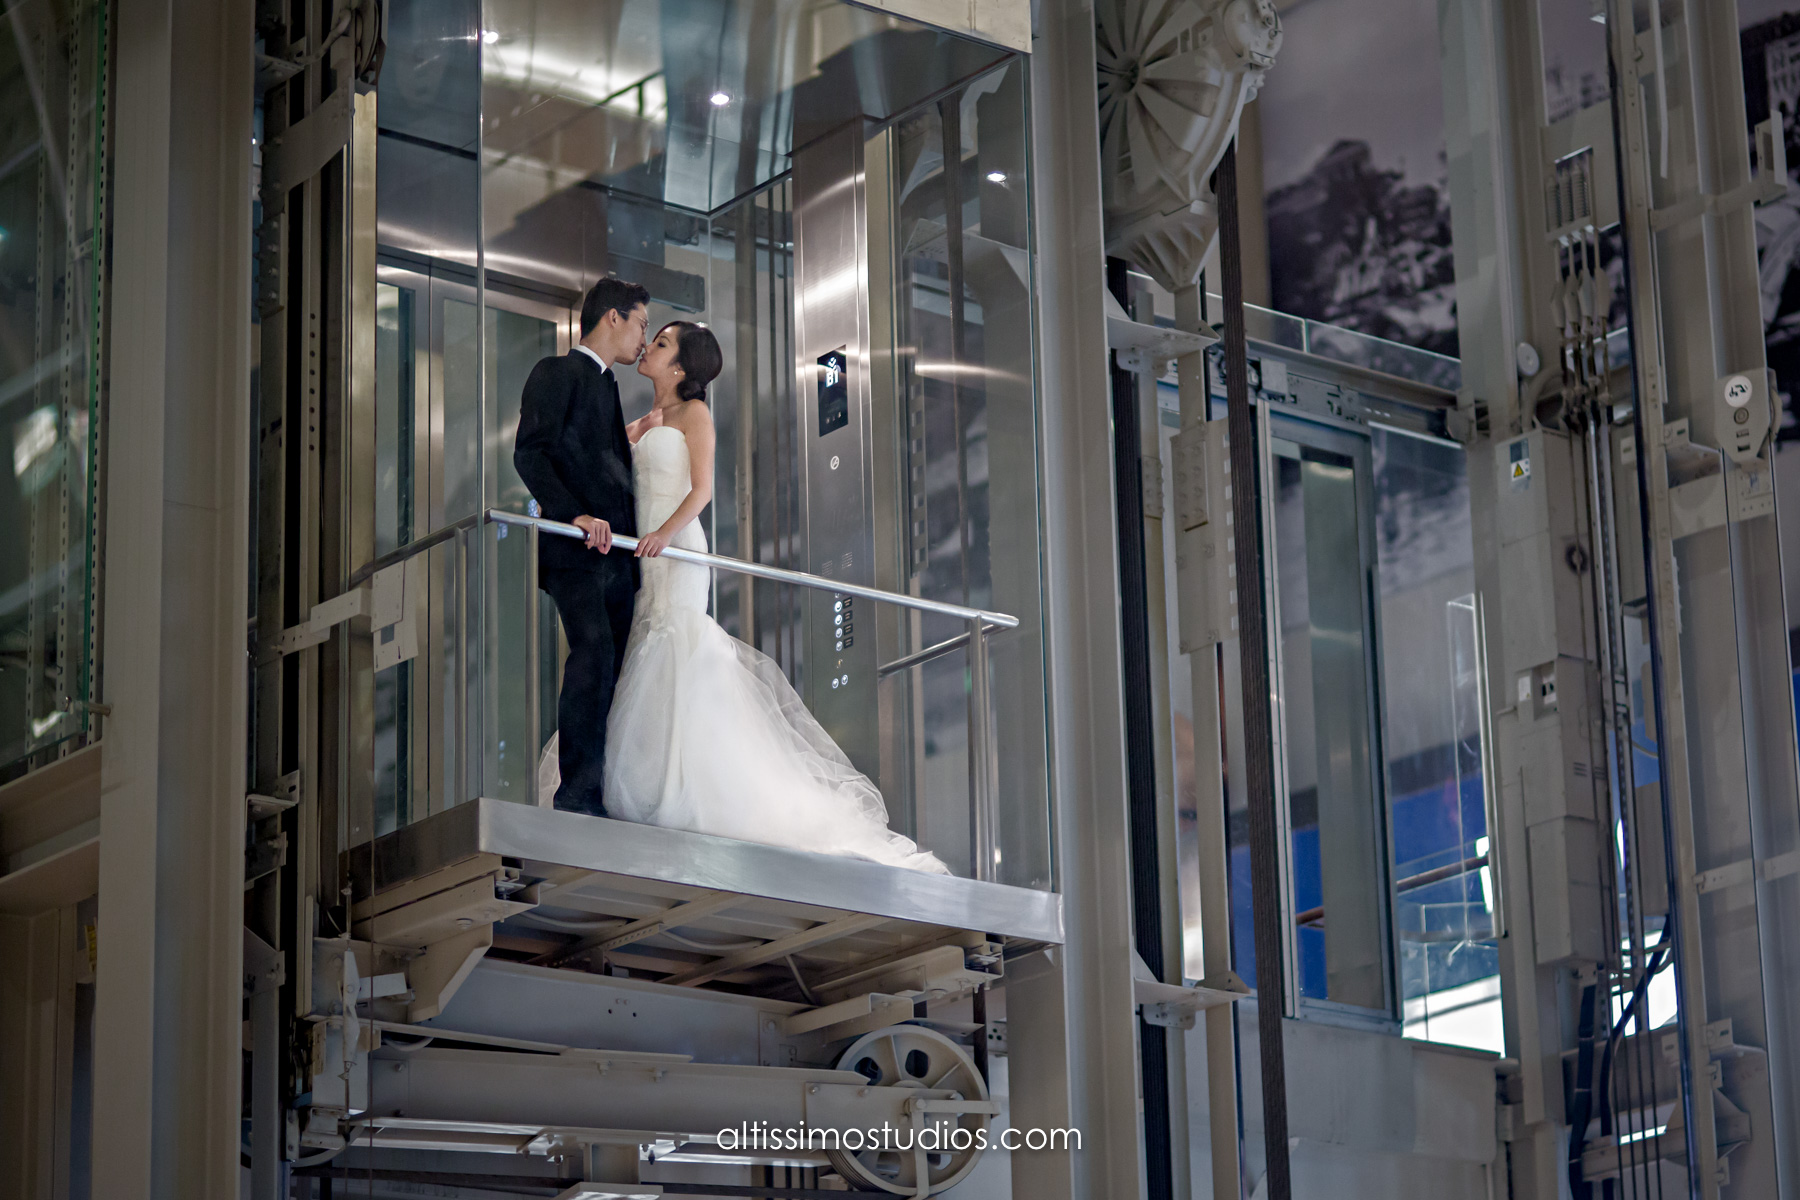 wedding picture taken in glass lift